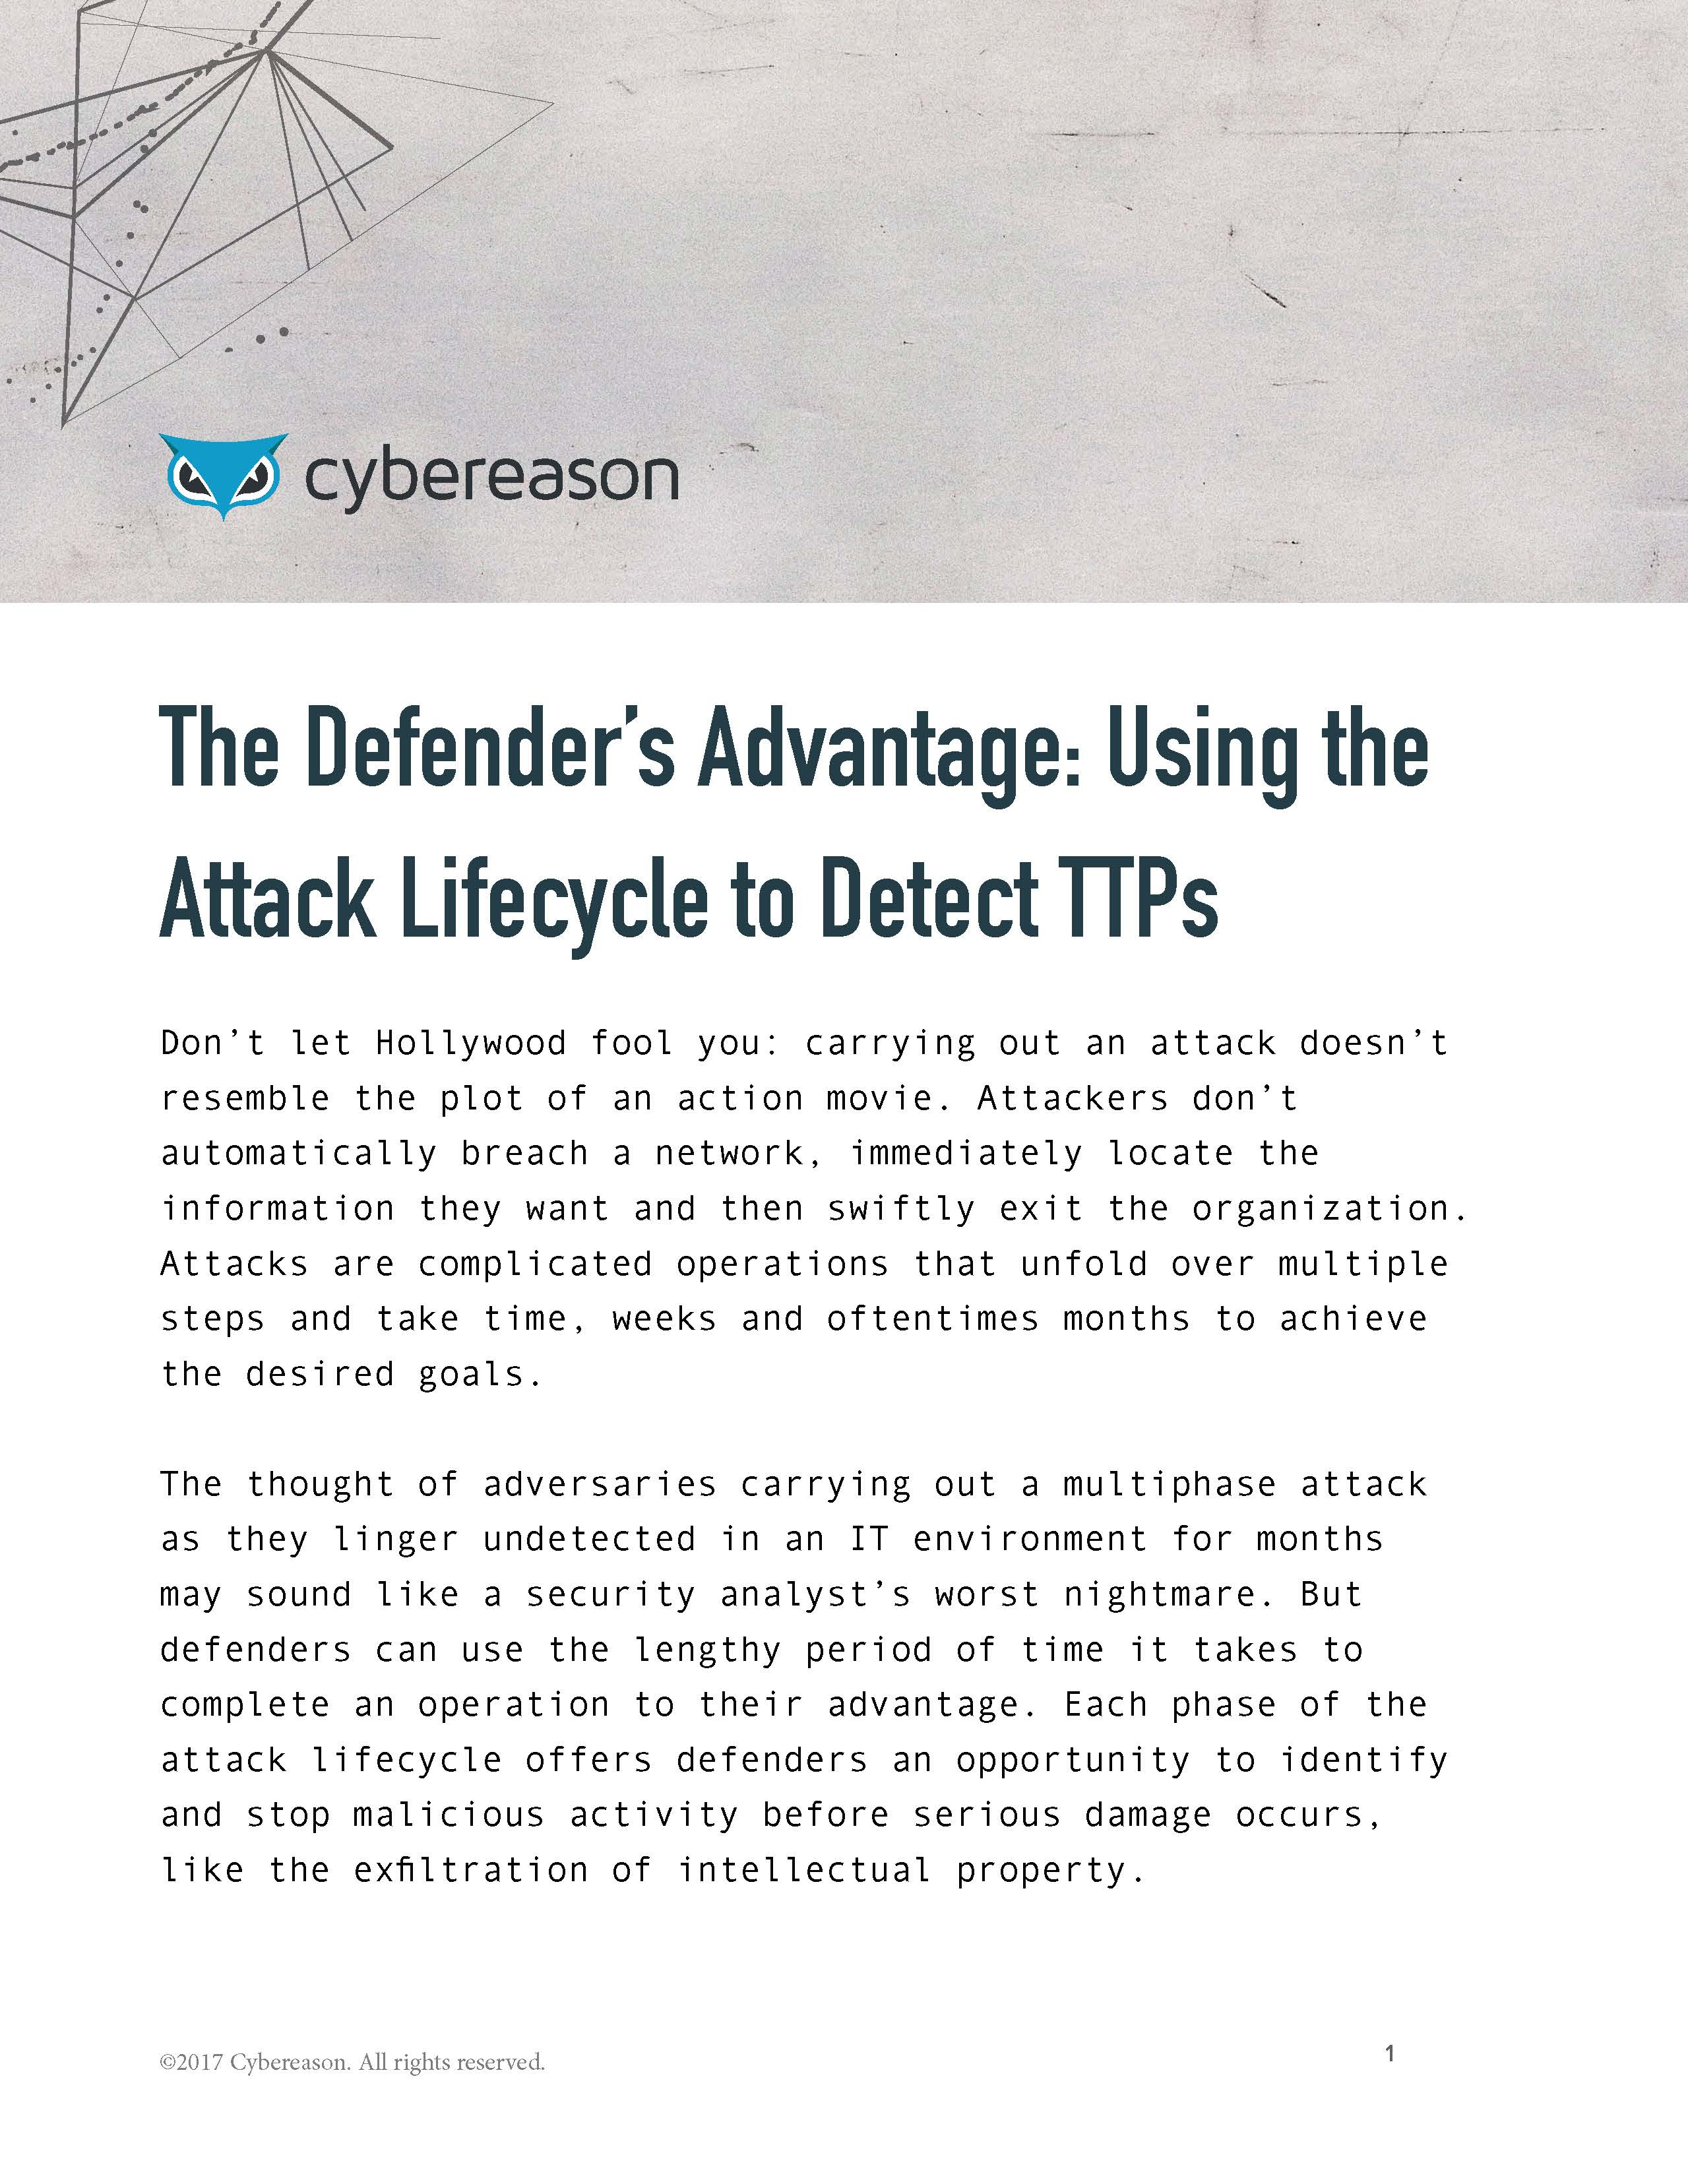 The defender's advantage: Using the attack lifecycle to detect tools, techniques and procedures